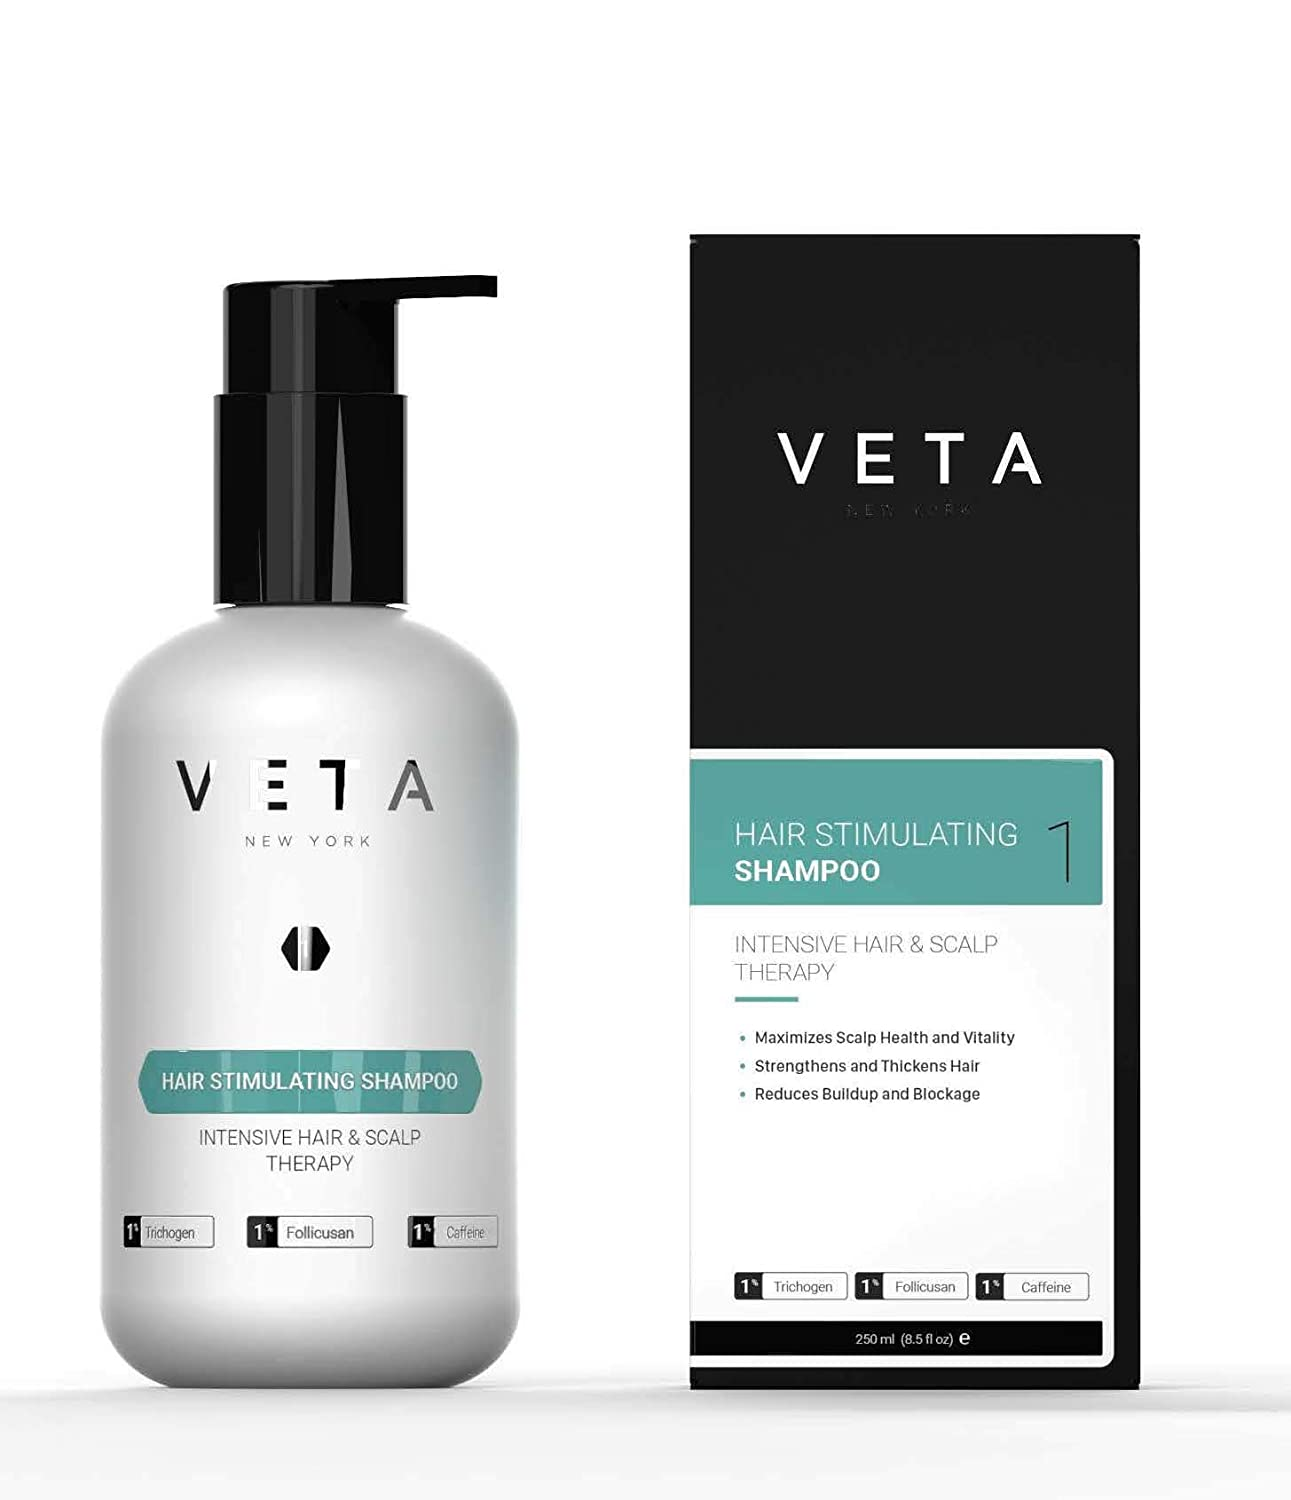 Veta – Hair Stimulating Shampoo For Hair Loss – Drug Free & Sulfate Free Treatment for Men and Women – Restores Hair Growth Cycle – 1% Trichogen and 1% Follicusan – 8.5 fl. oz.